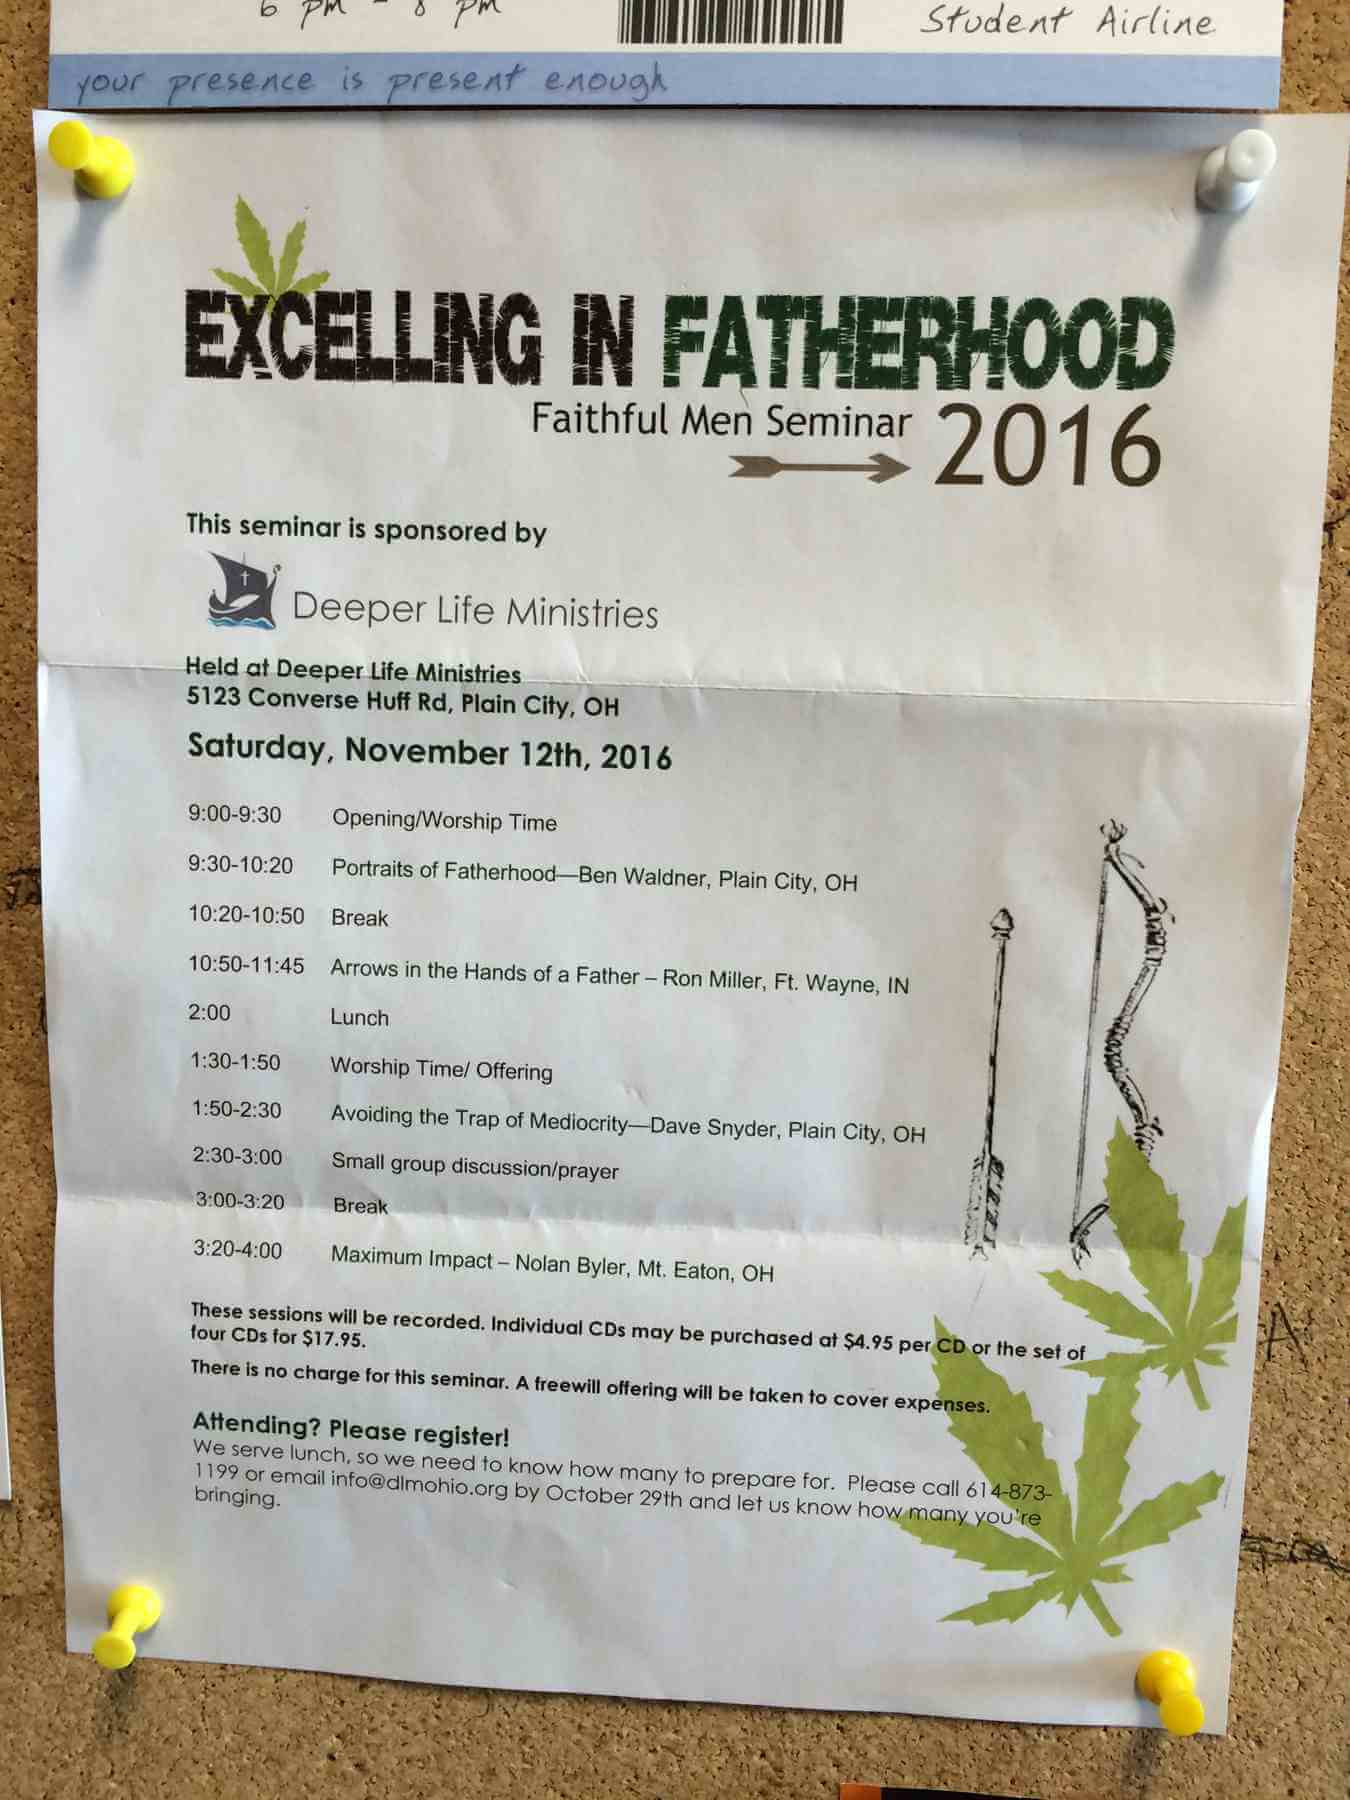 excelling in fatherhood french press podcast excelling in fatherhood 2016